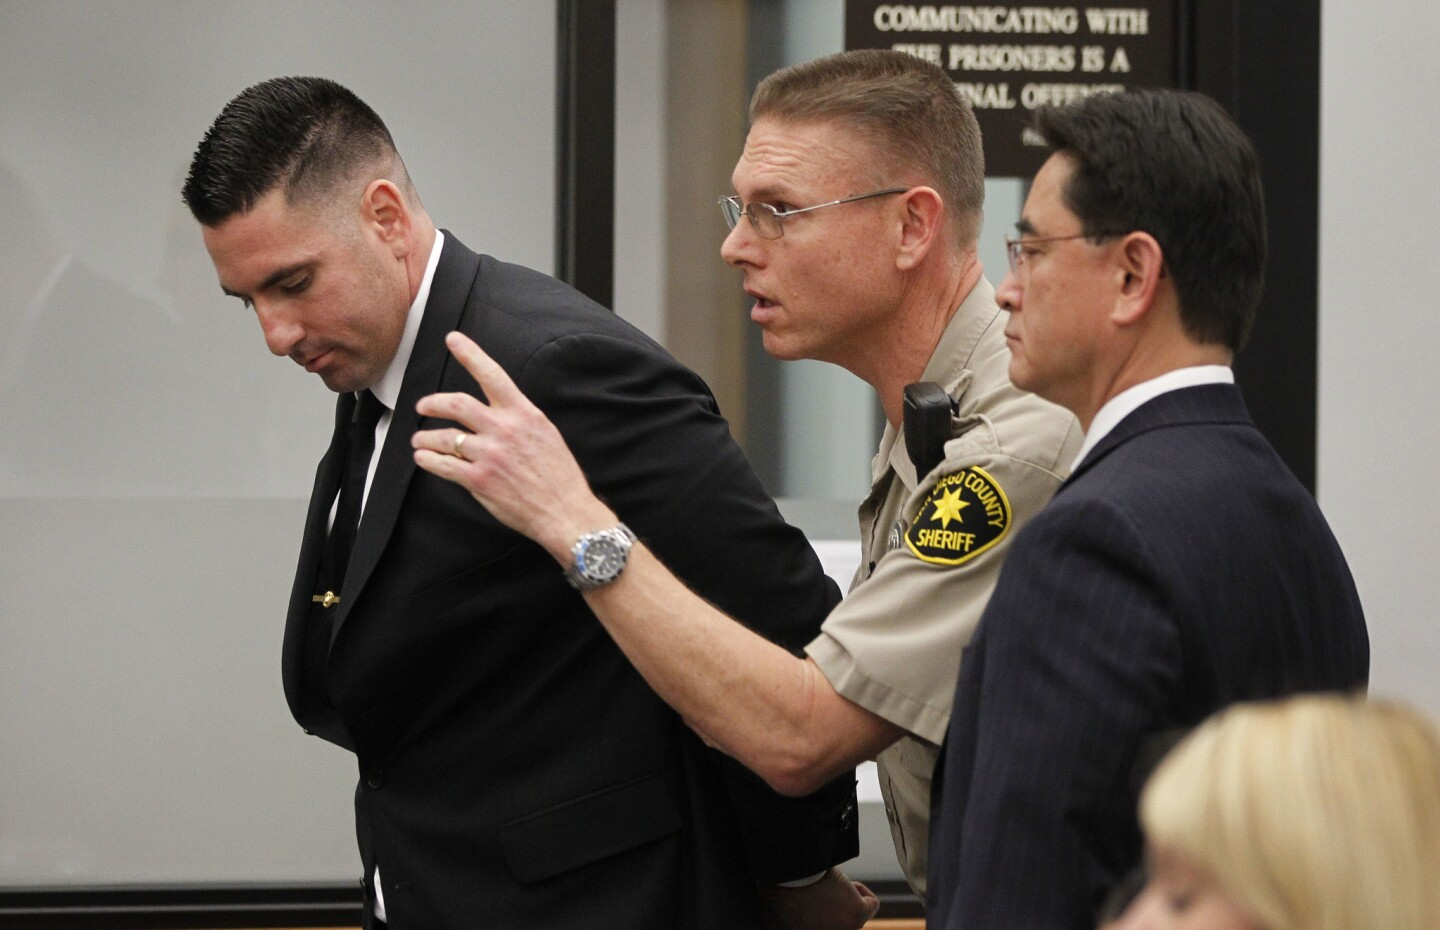 After being handcuffed, former Deputy Richard Fischer, left, is directed out of the courtroom by a court bailiff as he is taken into custody after his arraignment at the Vista courthouse on Thursday.